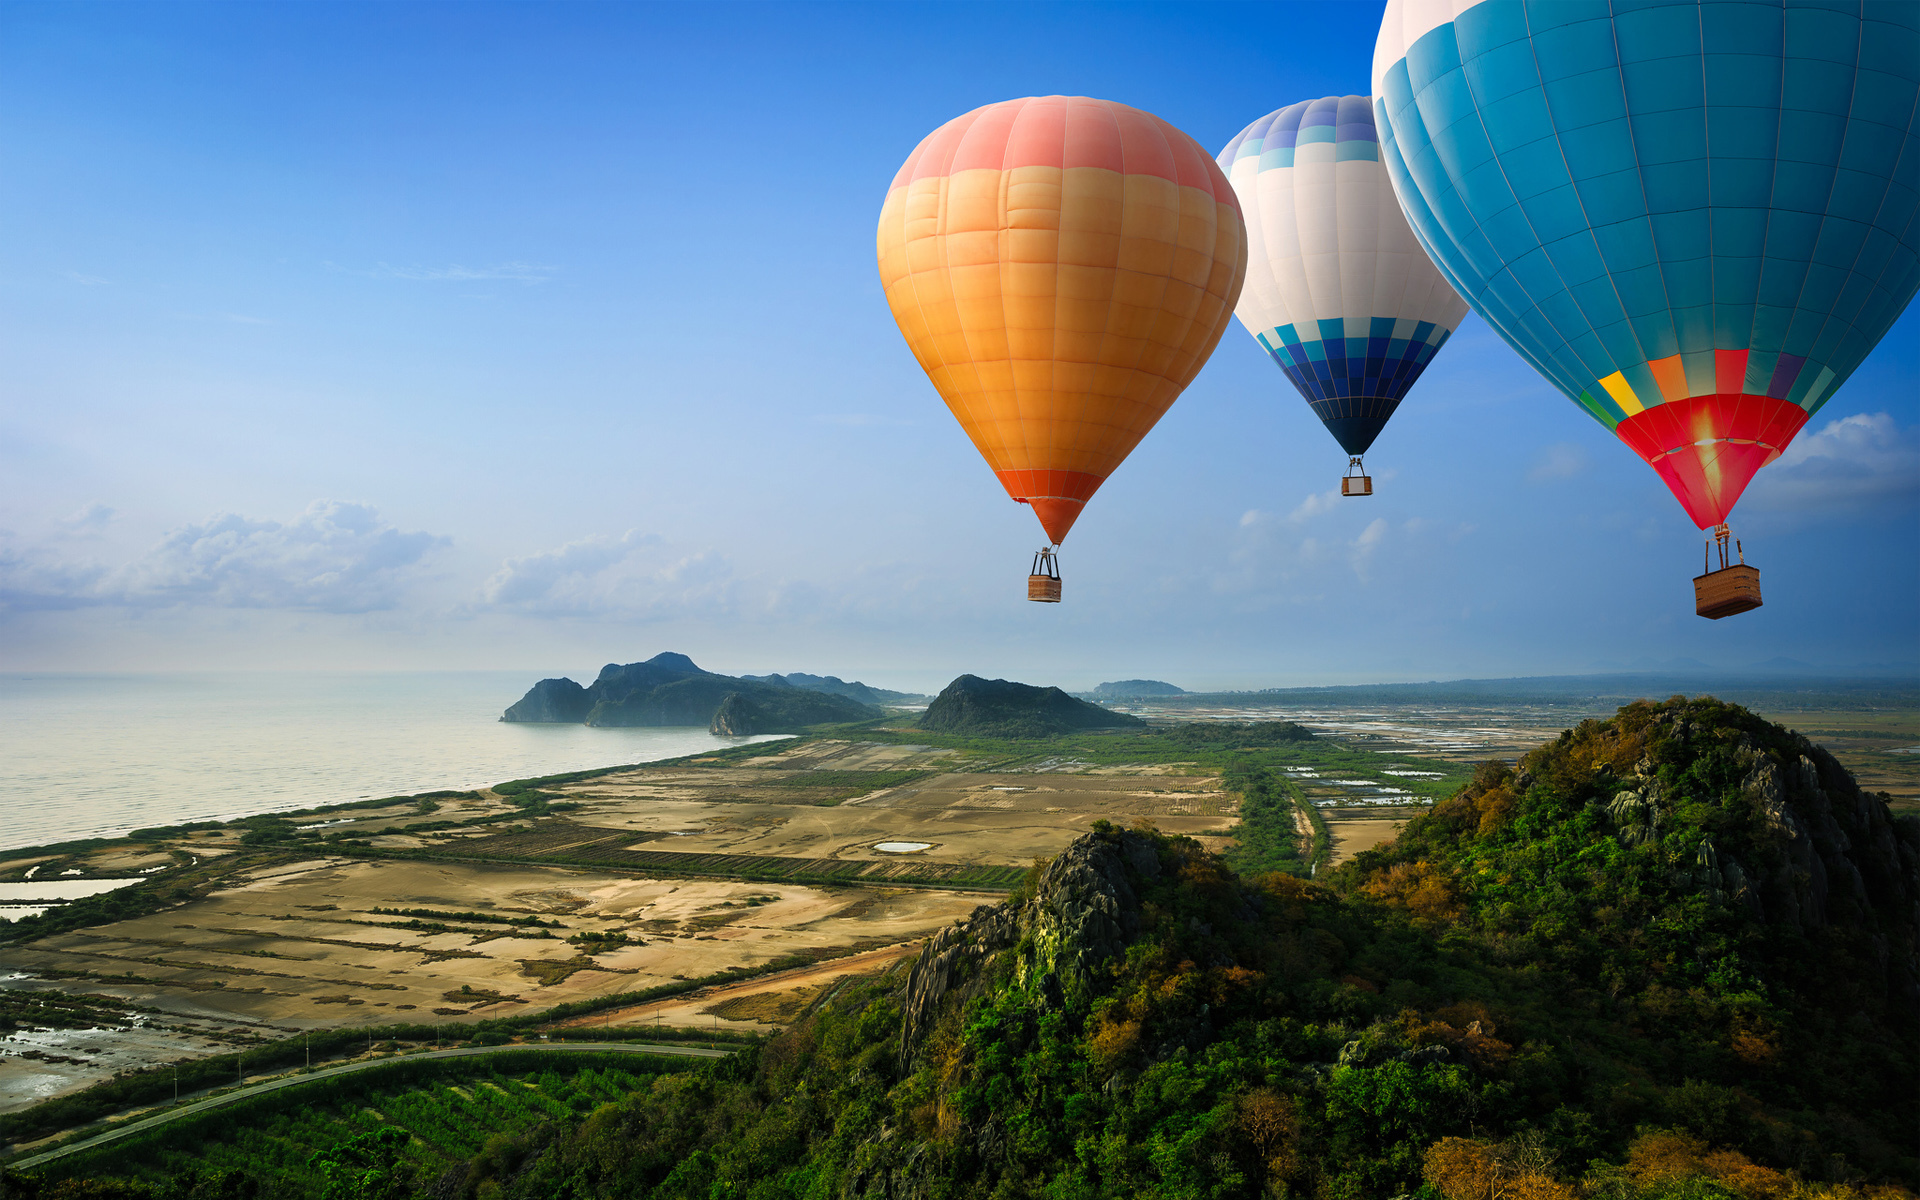 Three Air Balloon Wallpaper for iPhone